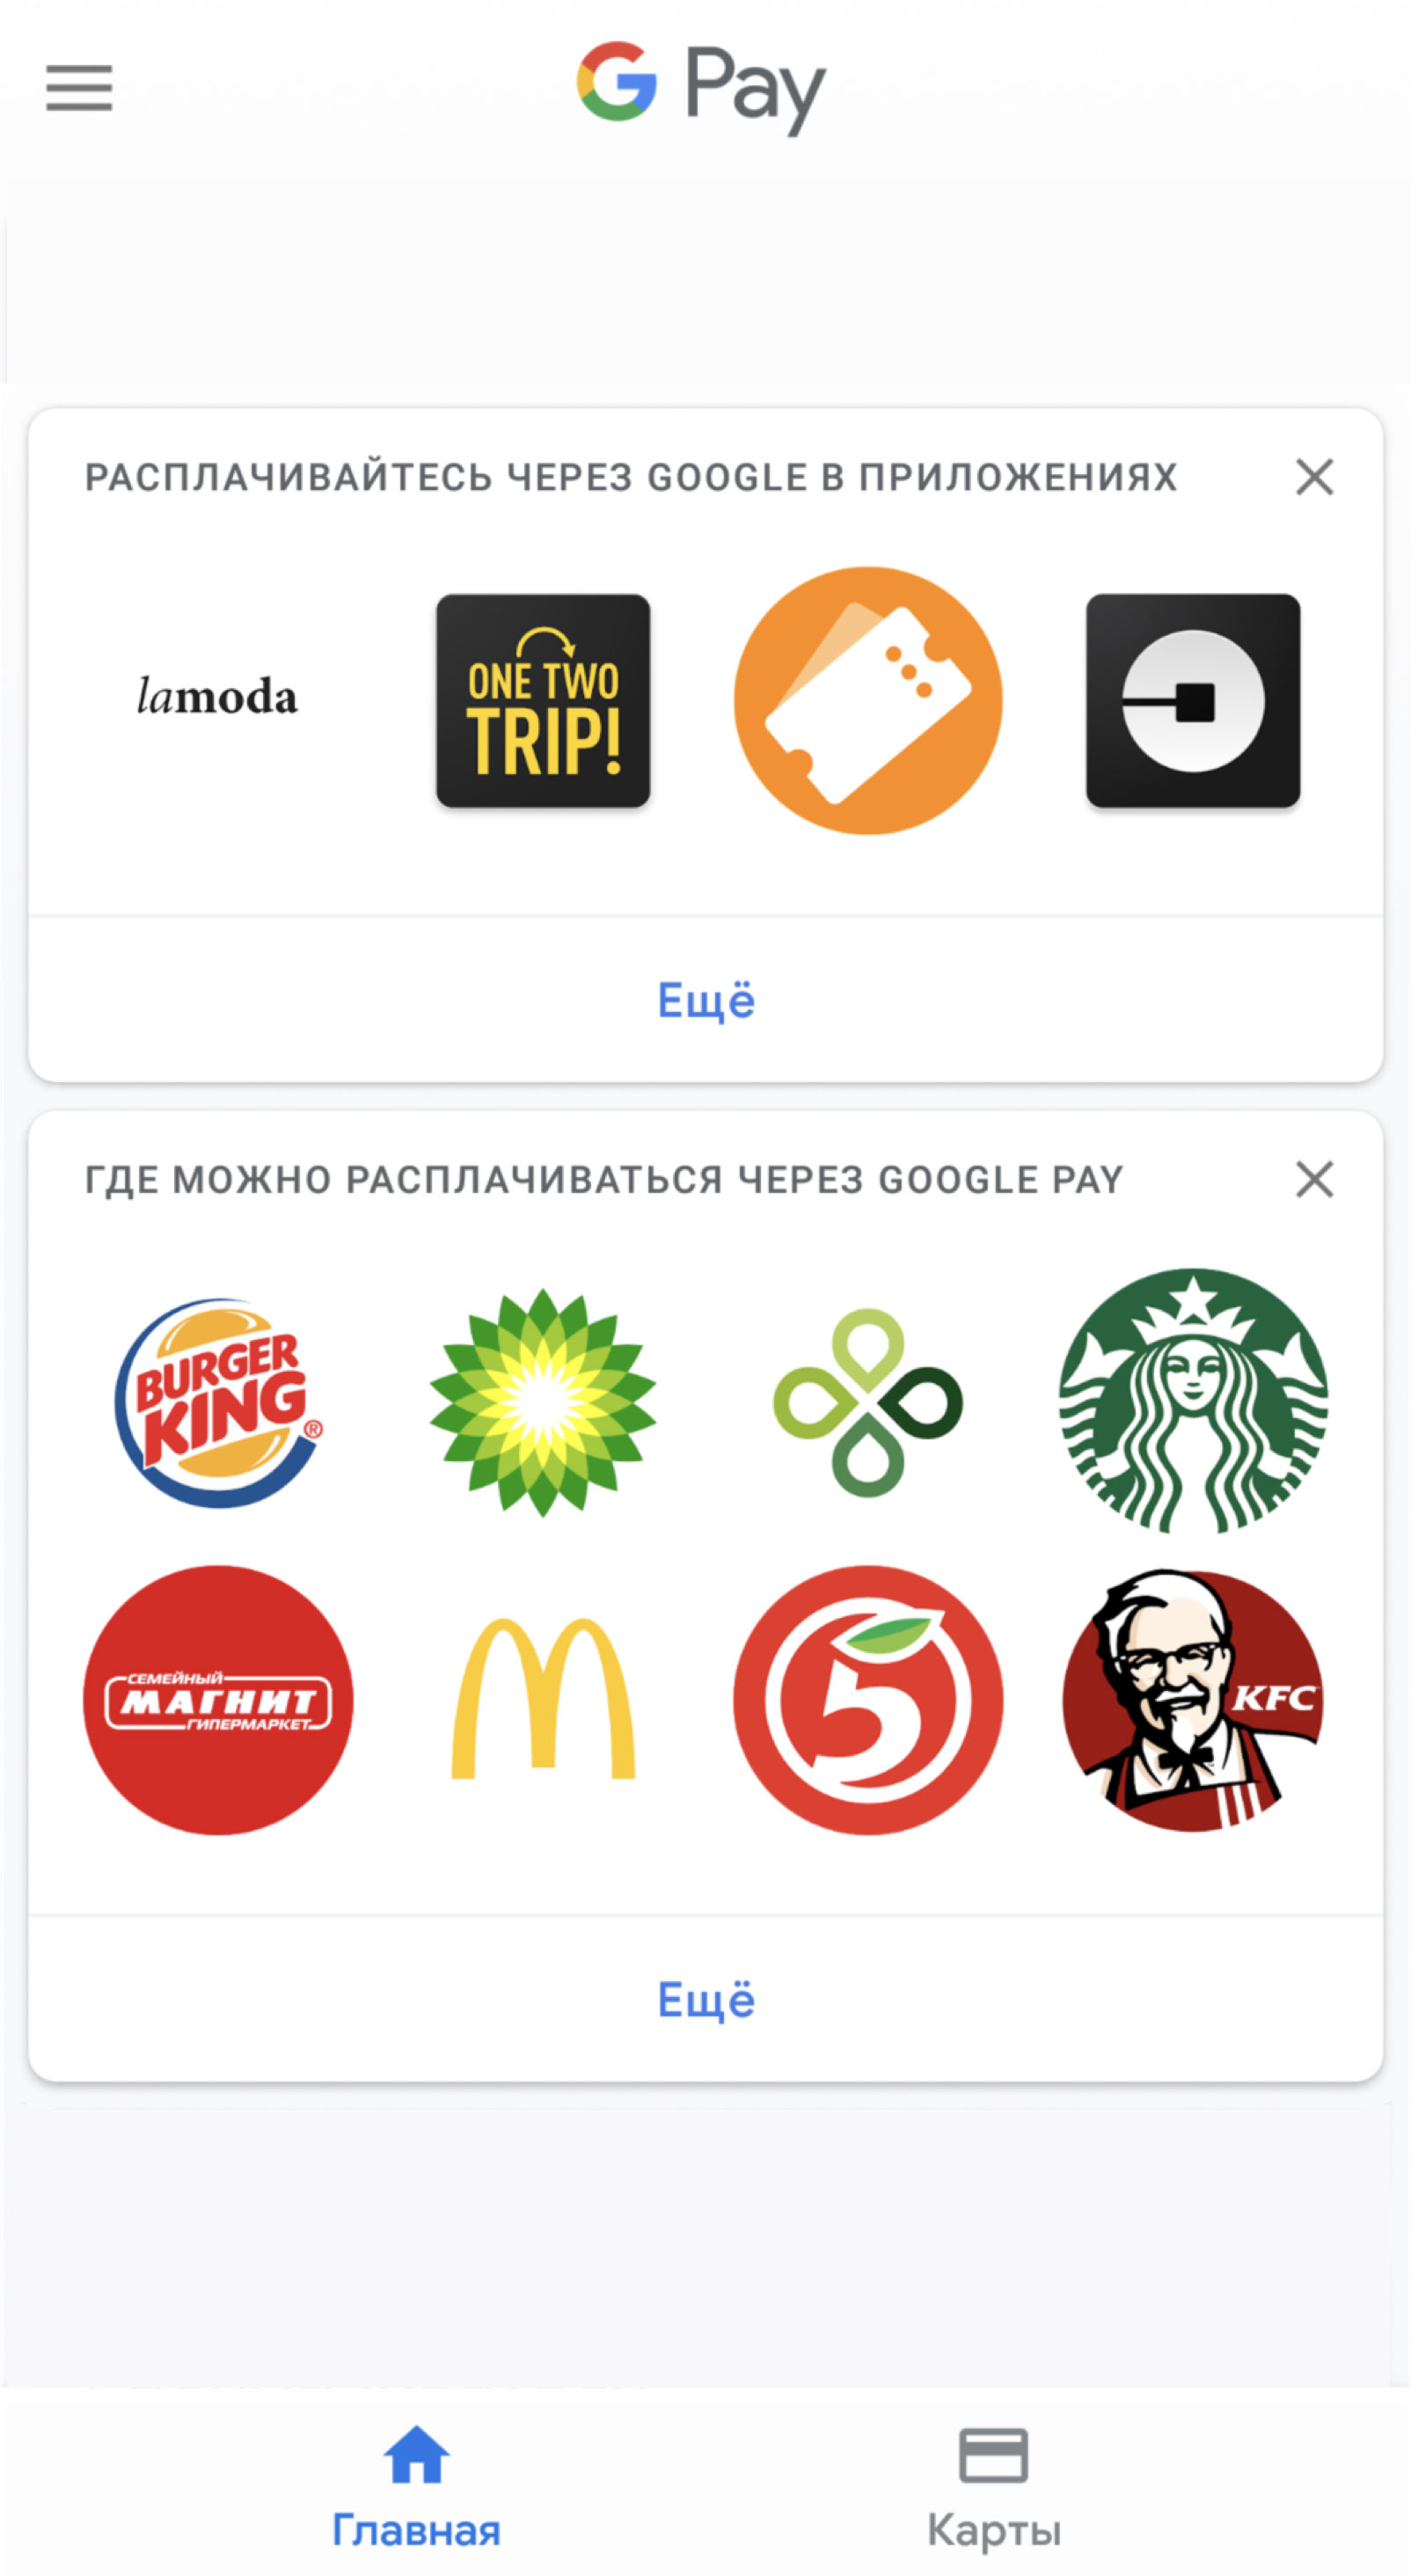 'Google Pay App Sample Interface 1: nearby WholeFoods Market $5 gift card Dunkin Donuts promotion Use GooglePay at Dunkin Donuts 3 times and earn a $5 gift card Get started Recent Activity Zynga $1.00'